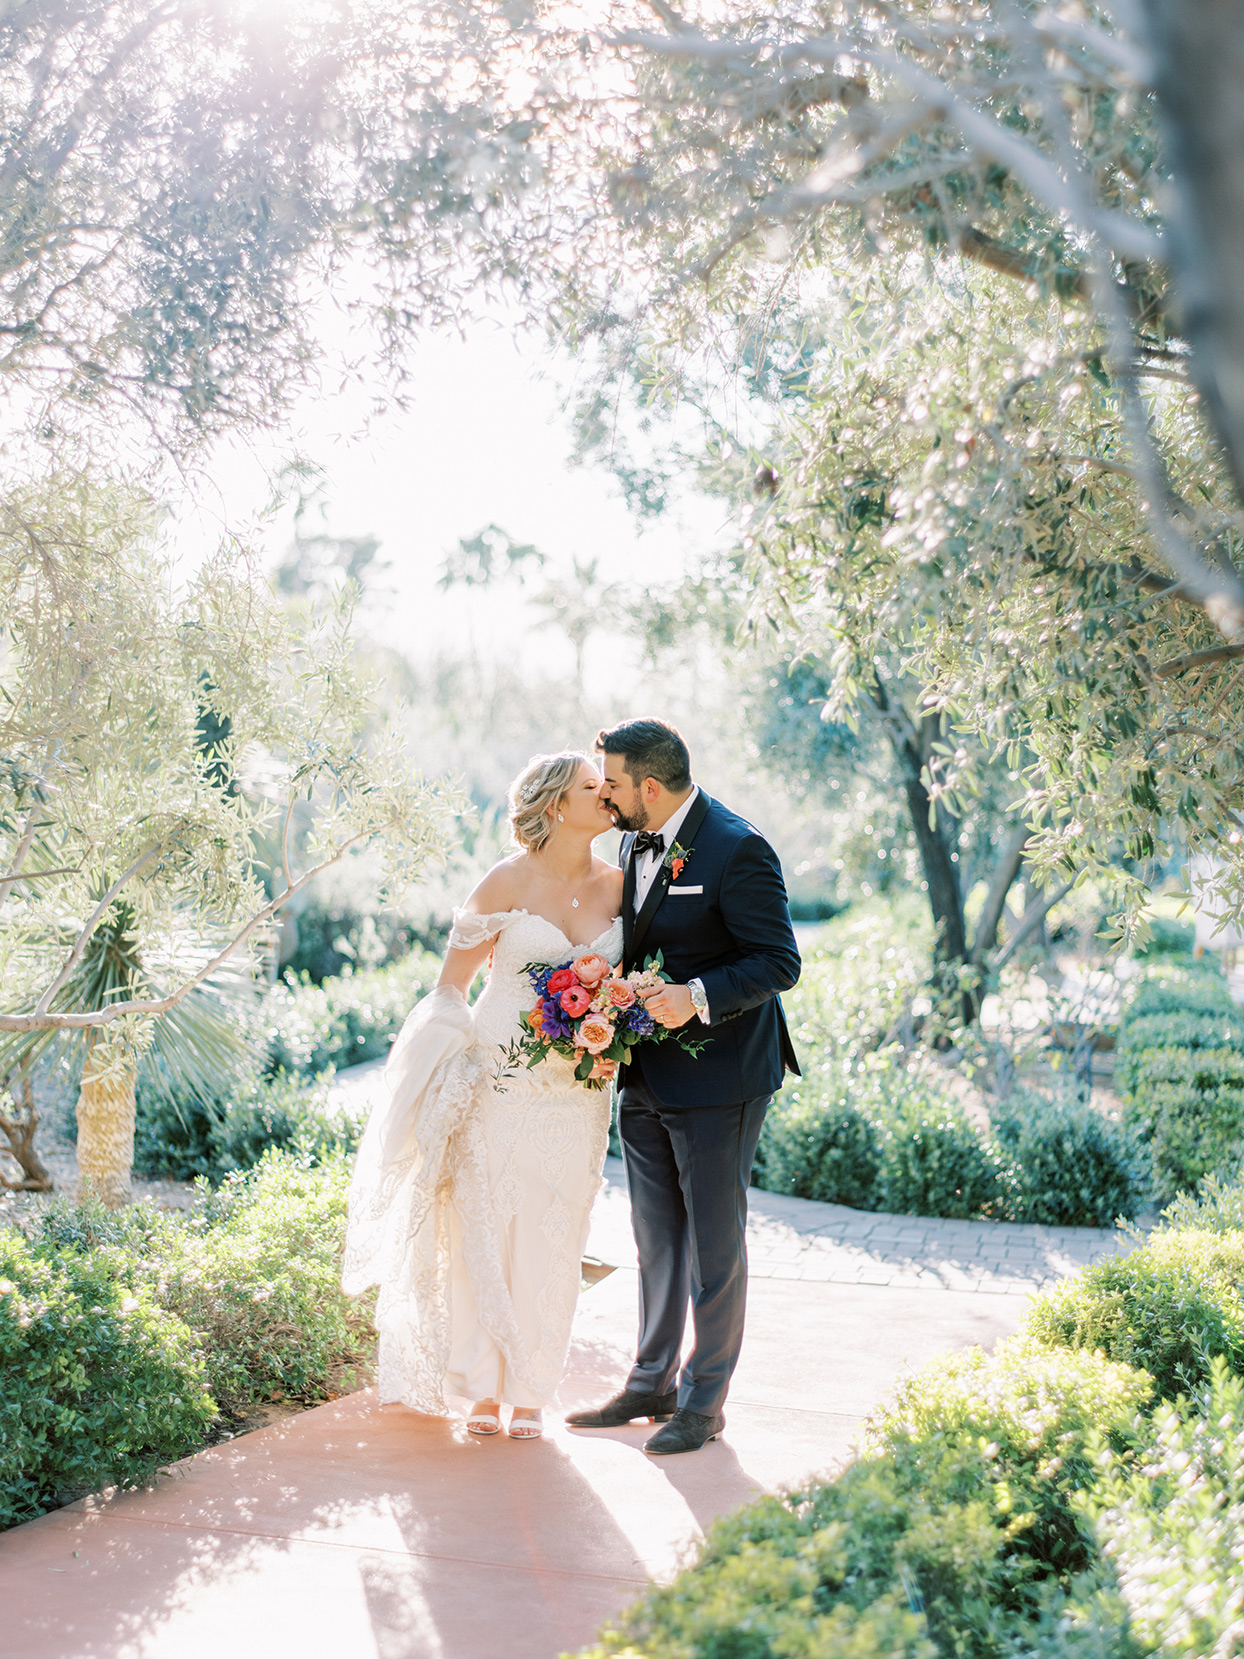 bride and groom share a kiss under trees on outdoor pathway